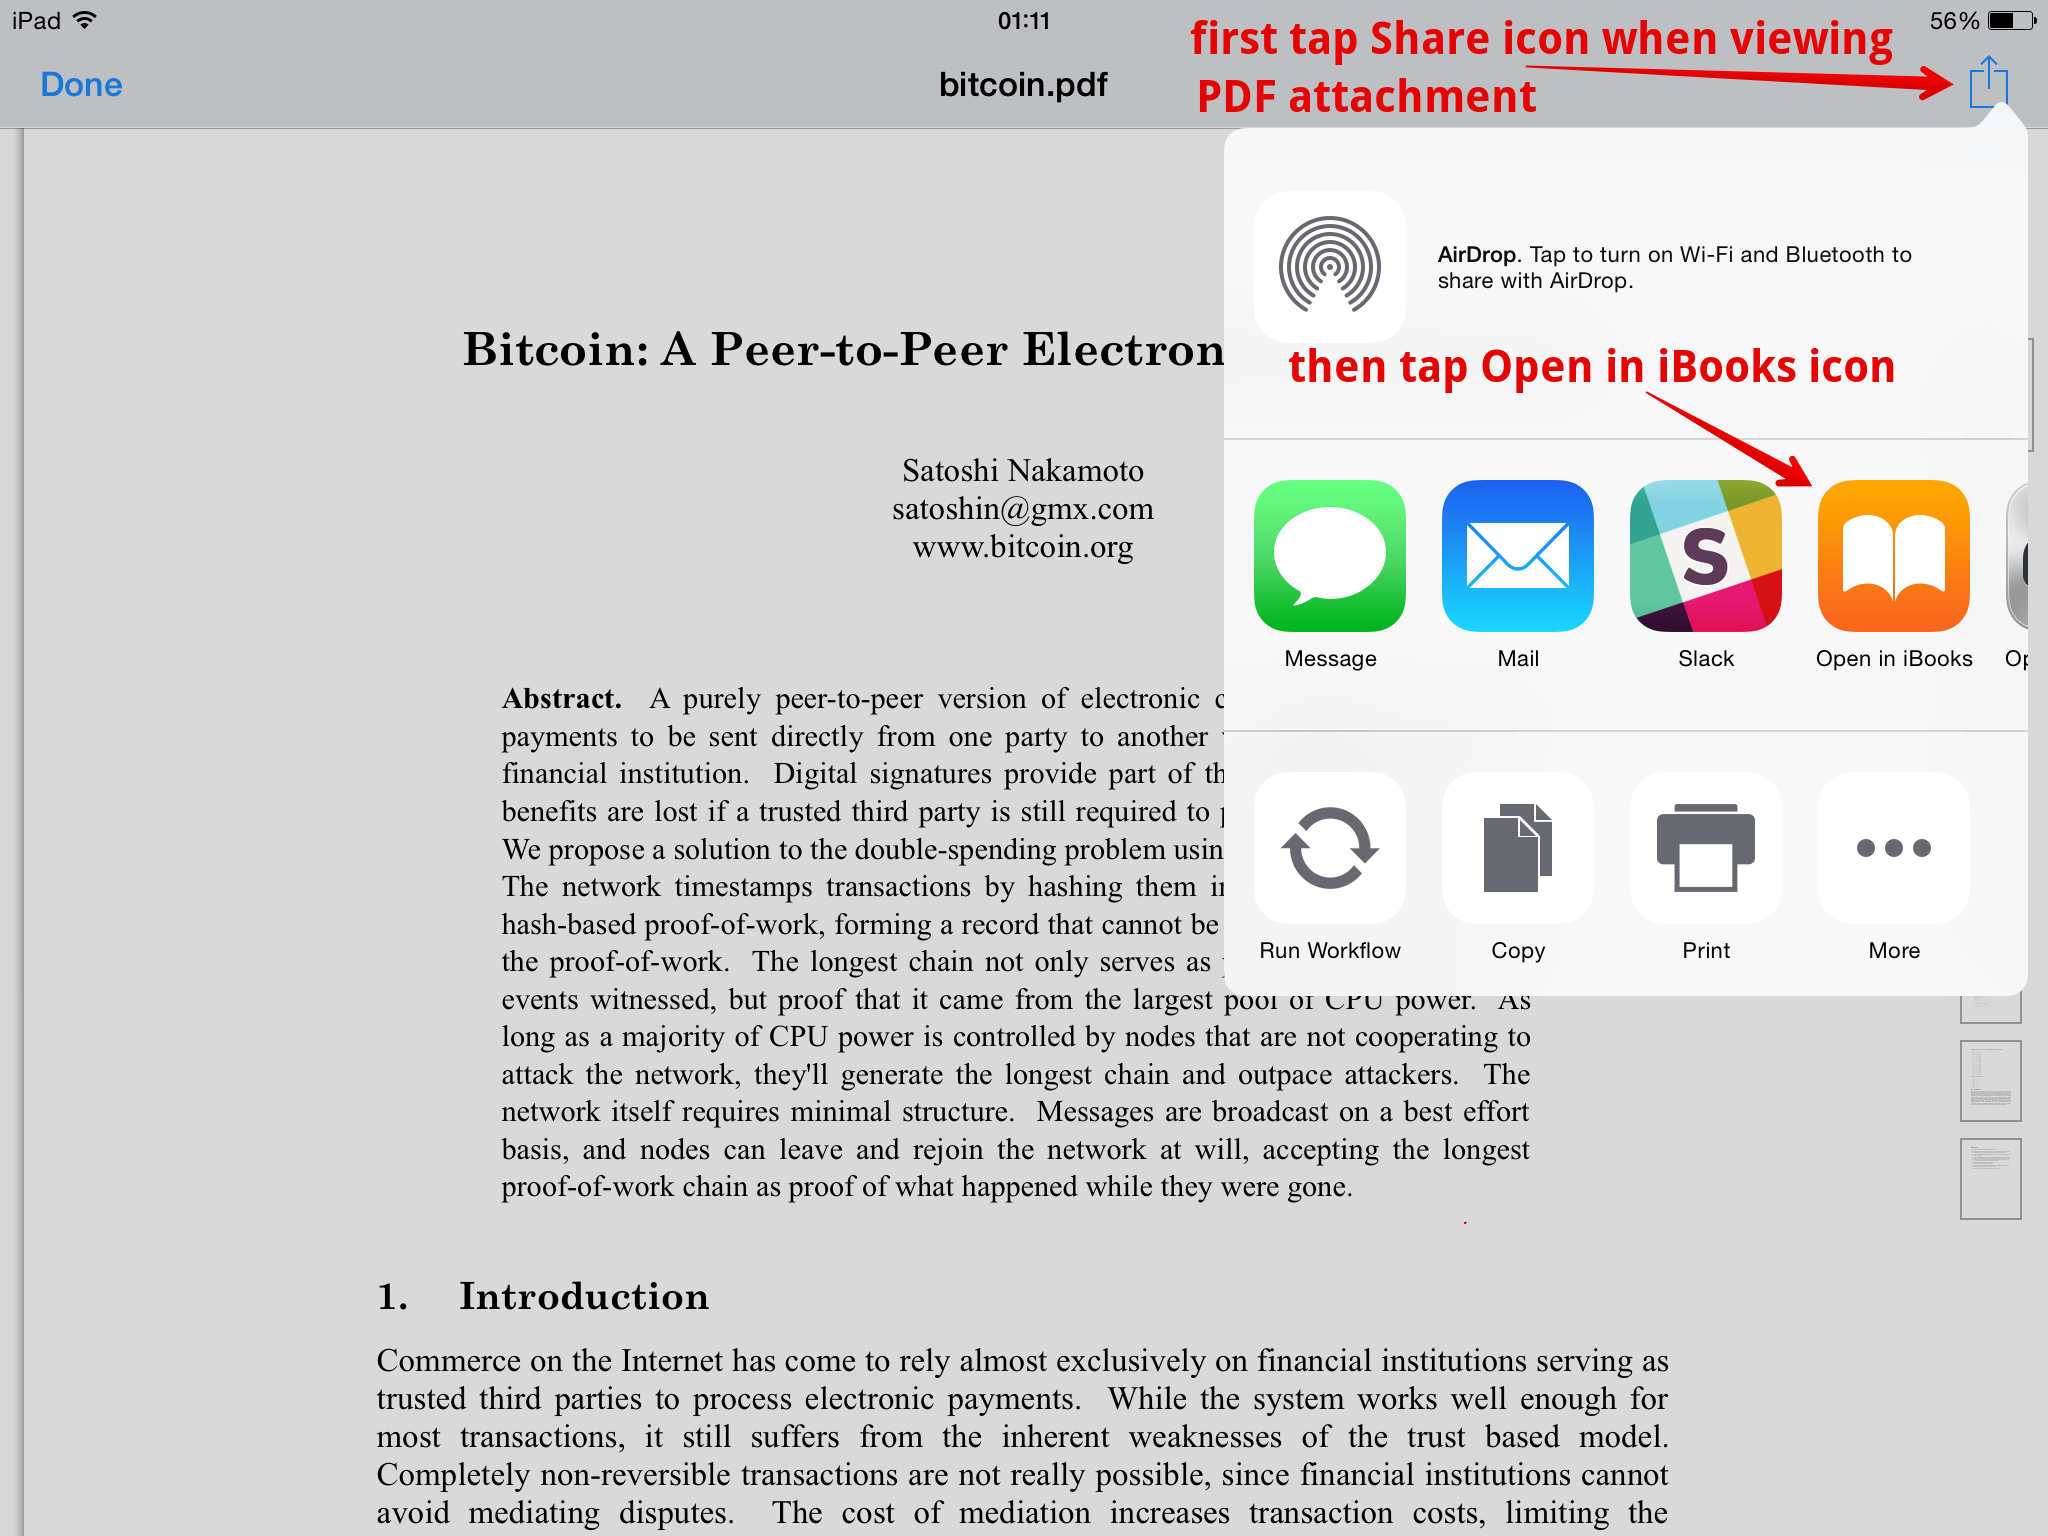 Can you open PDFs in iBooks after they have been opened